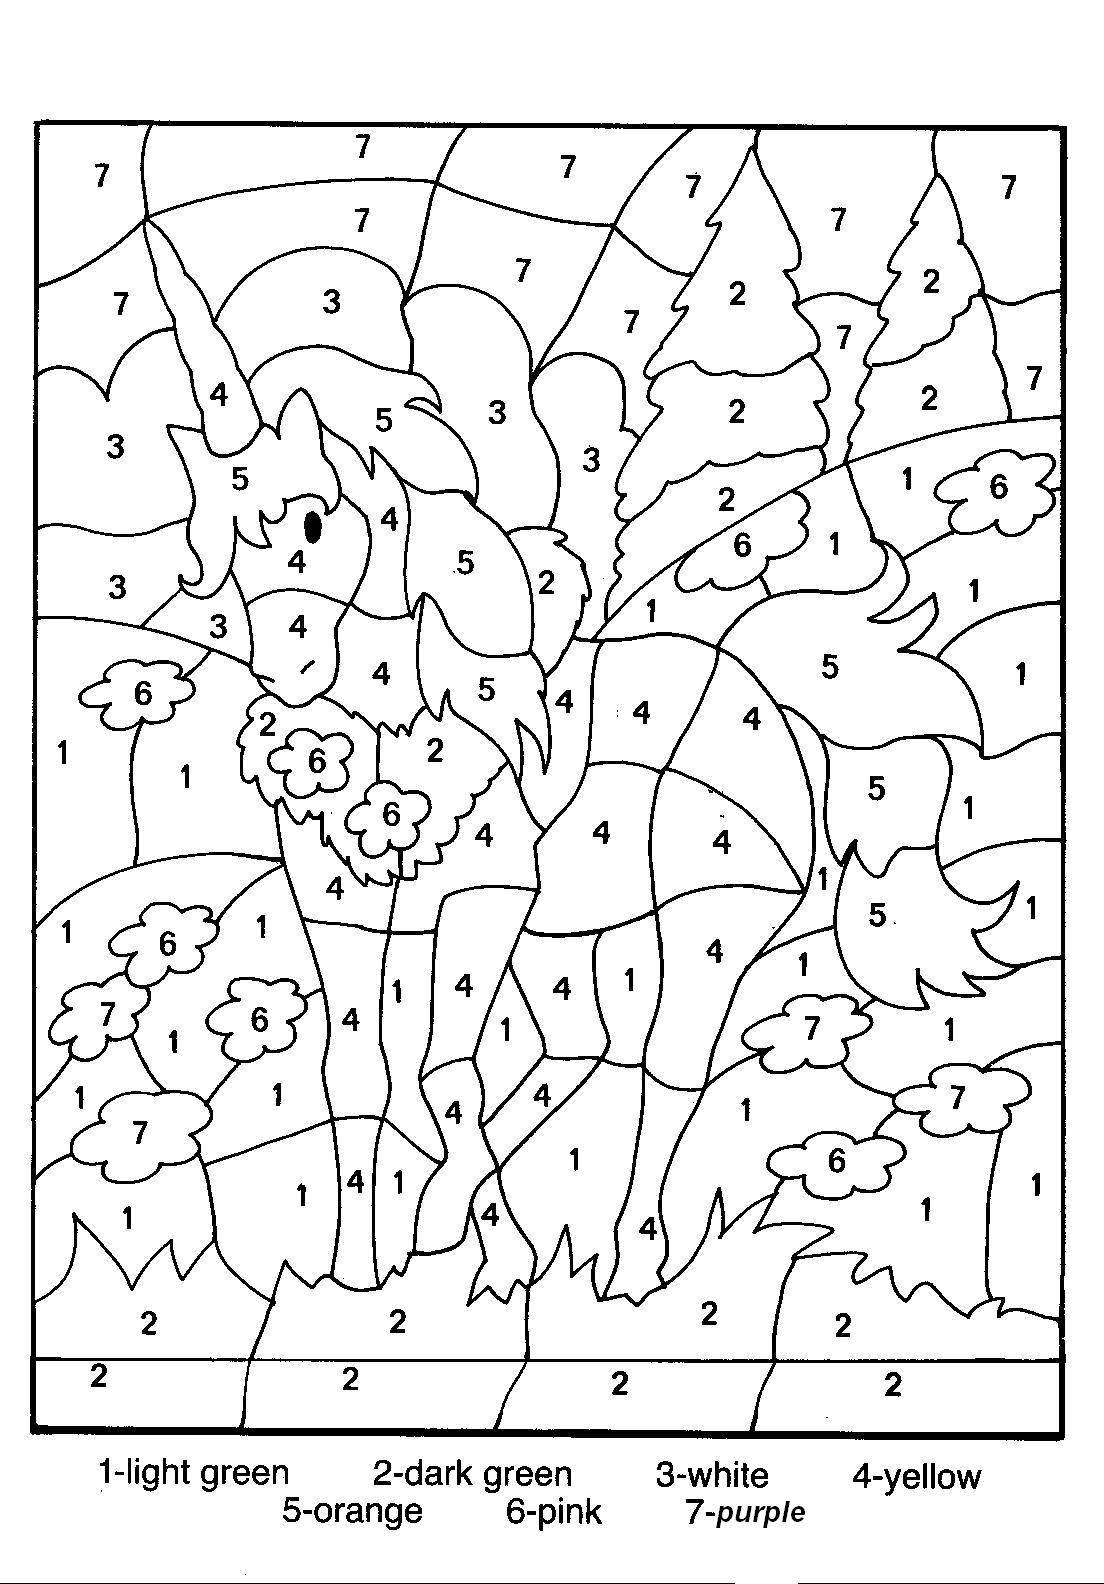 color by number worksheets hard really difficult color by number for adults coloring pages hard worksheets by color number